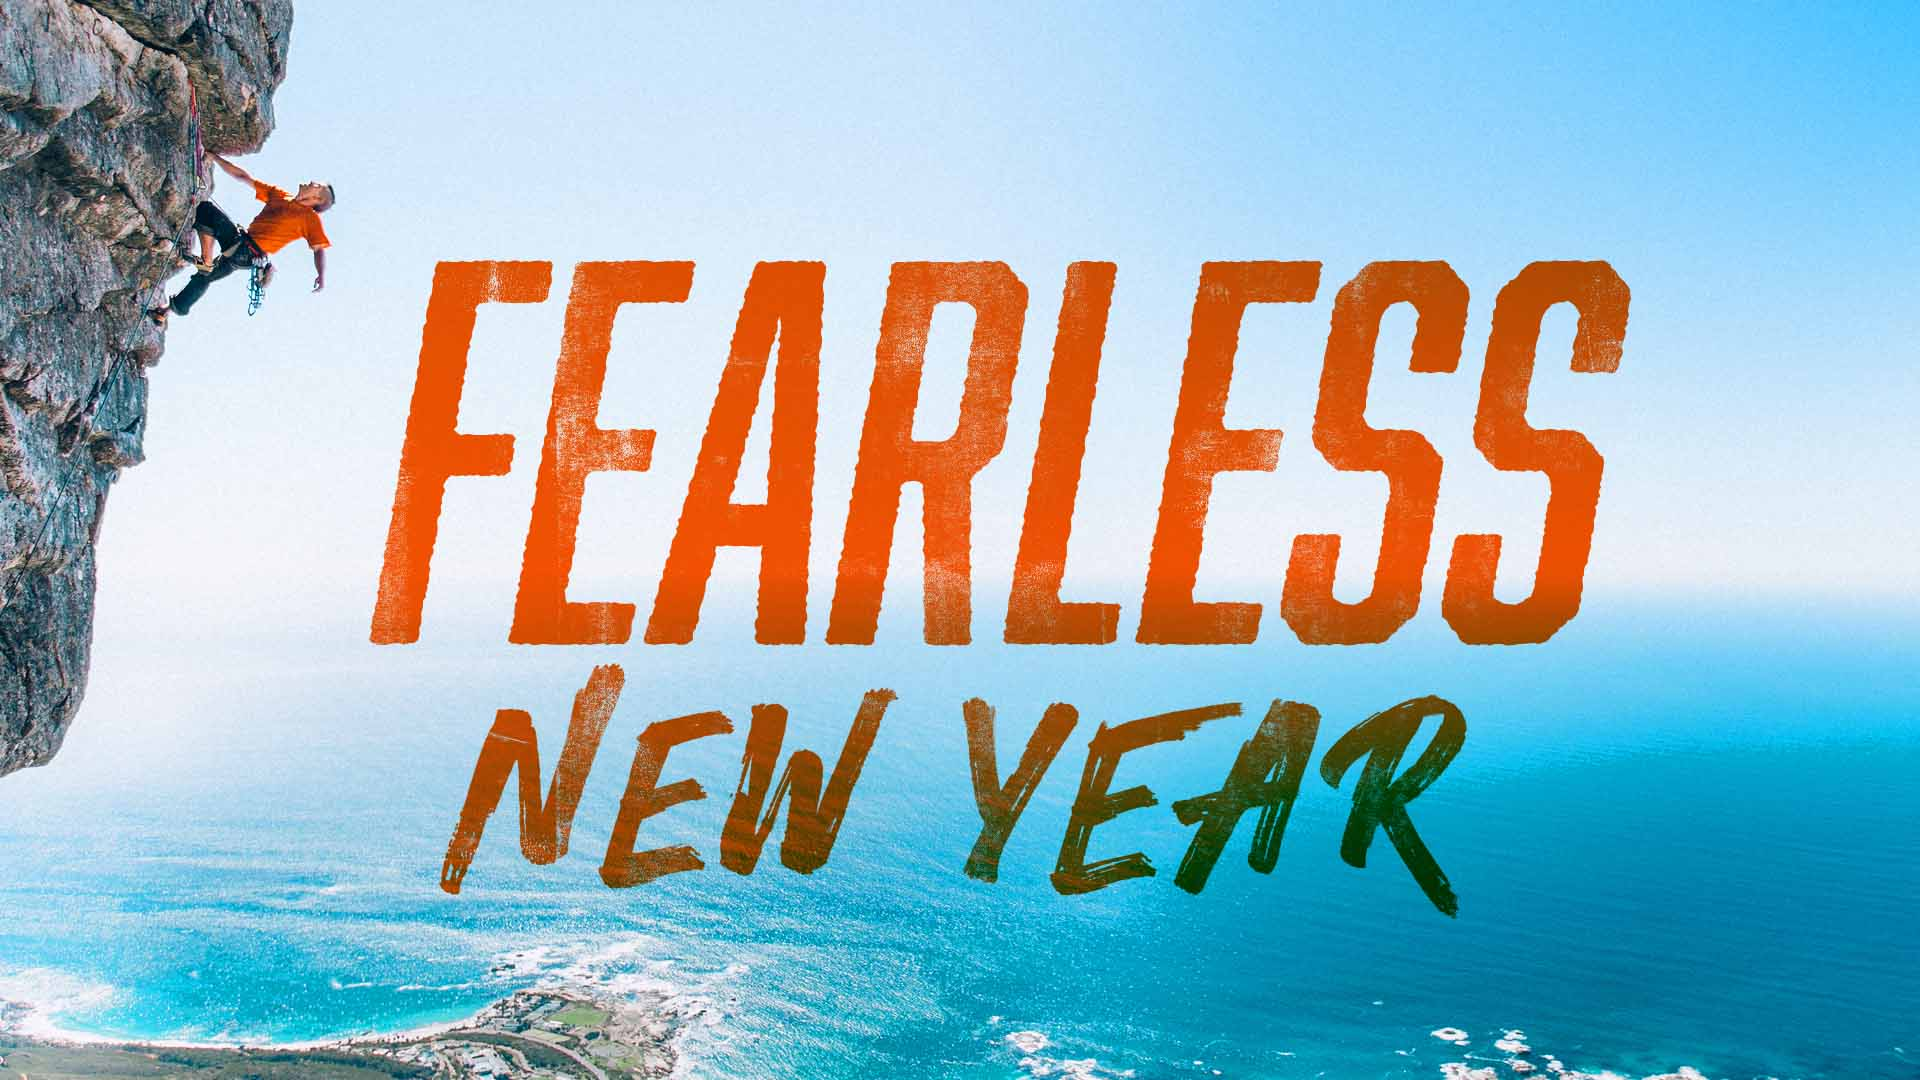 Fearless New Year